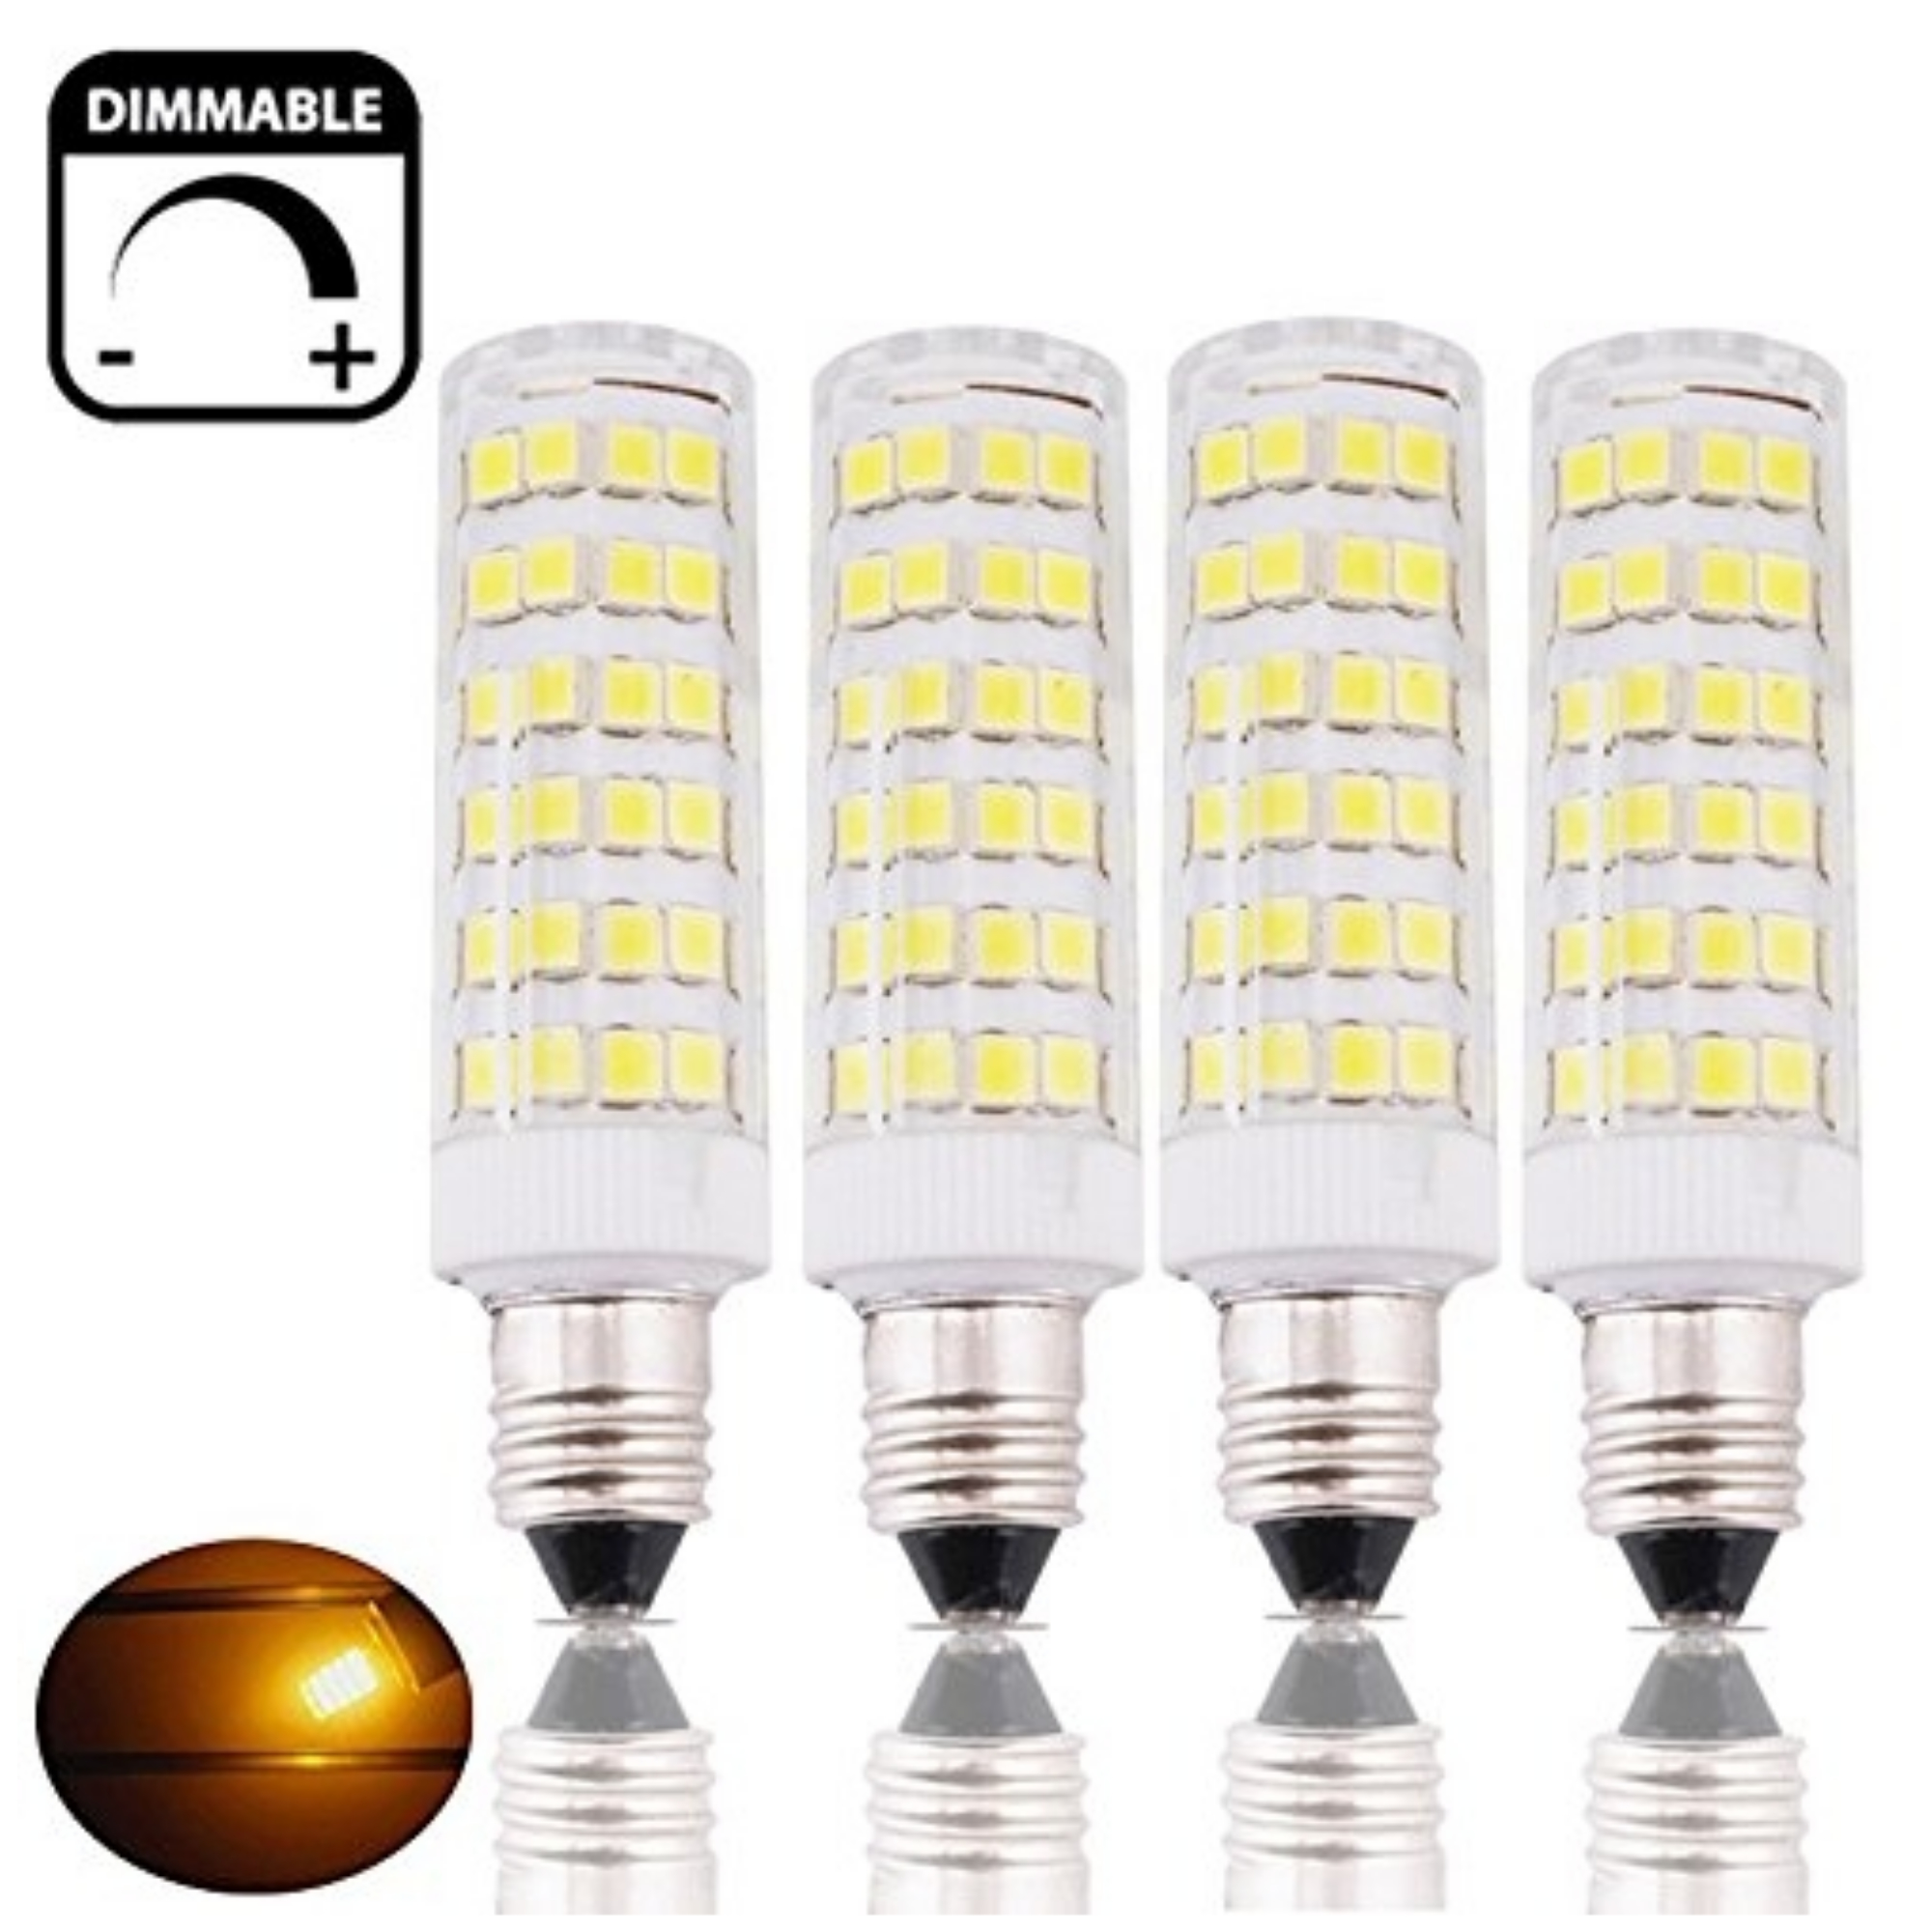 Bonlux Mini E11 T3/T4 Candelabra Base LED Light Bulb, 6W(45W Equivalent), Dimmable, Warm White 2800K, 4-Pack